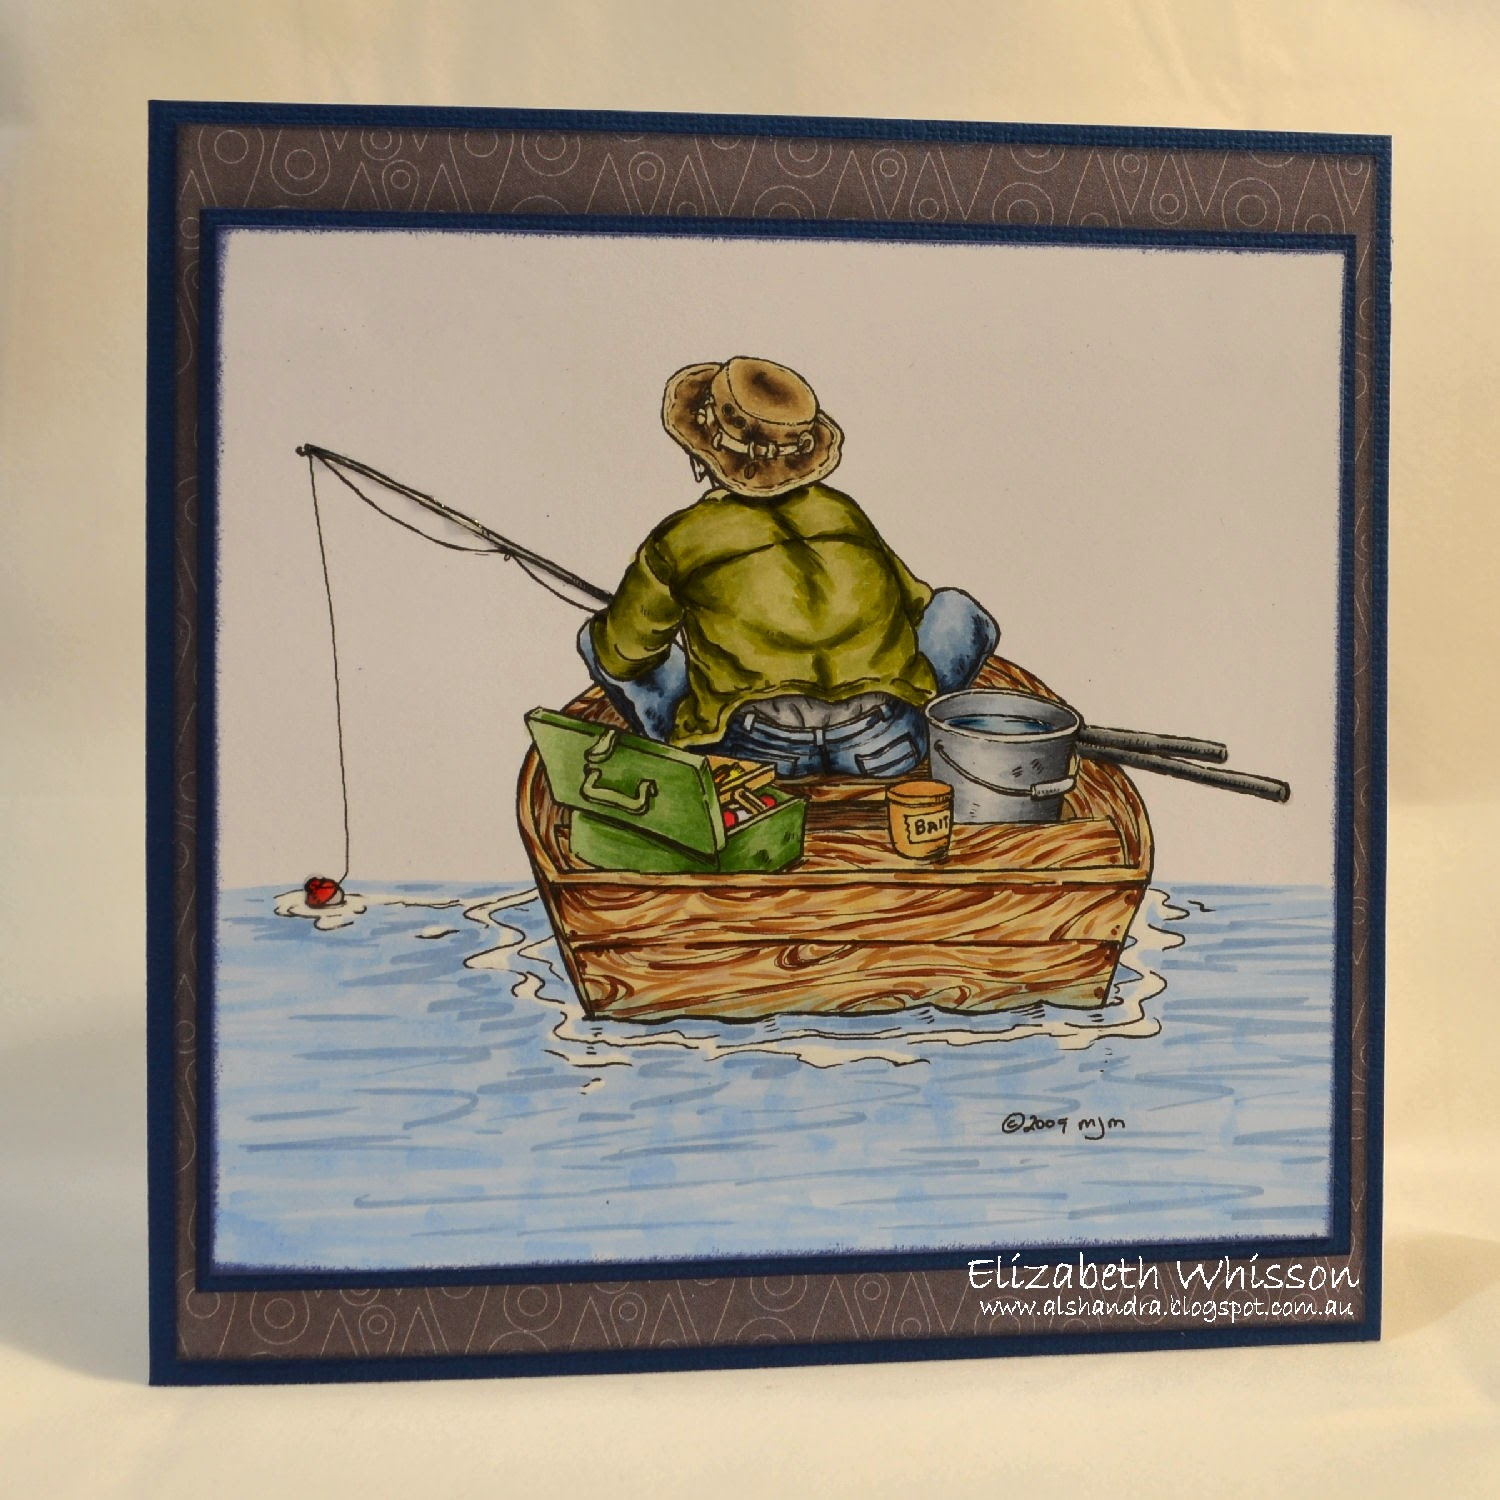 Elizabeth Whisson, Mo Manning, digi stamp, Fishing, Copic, Copic sketch, boating, handmade card